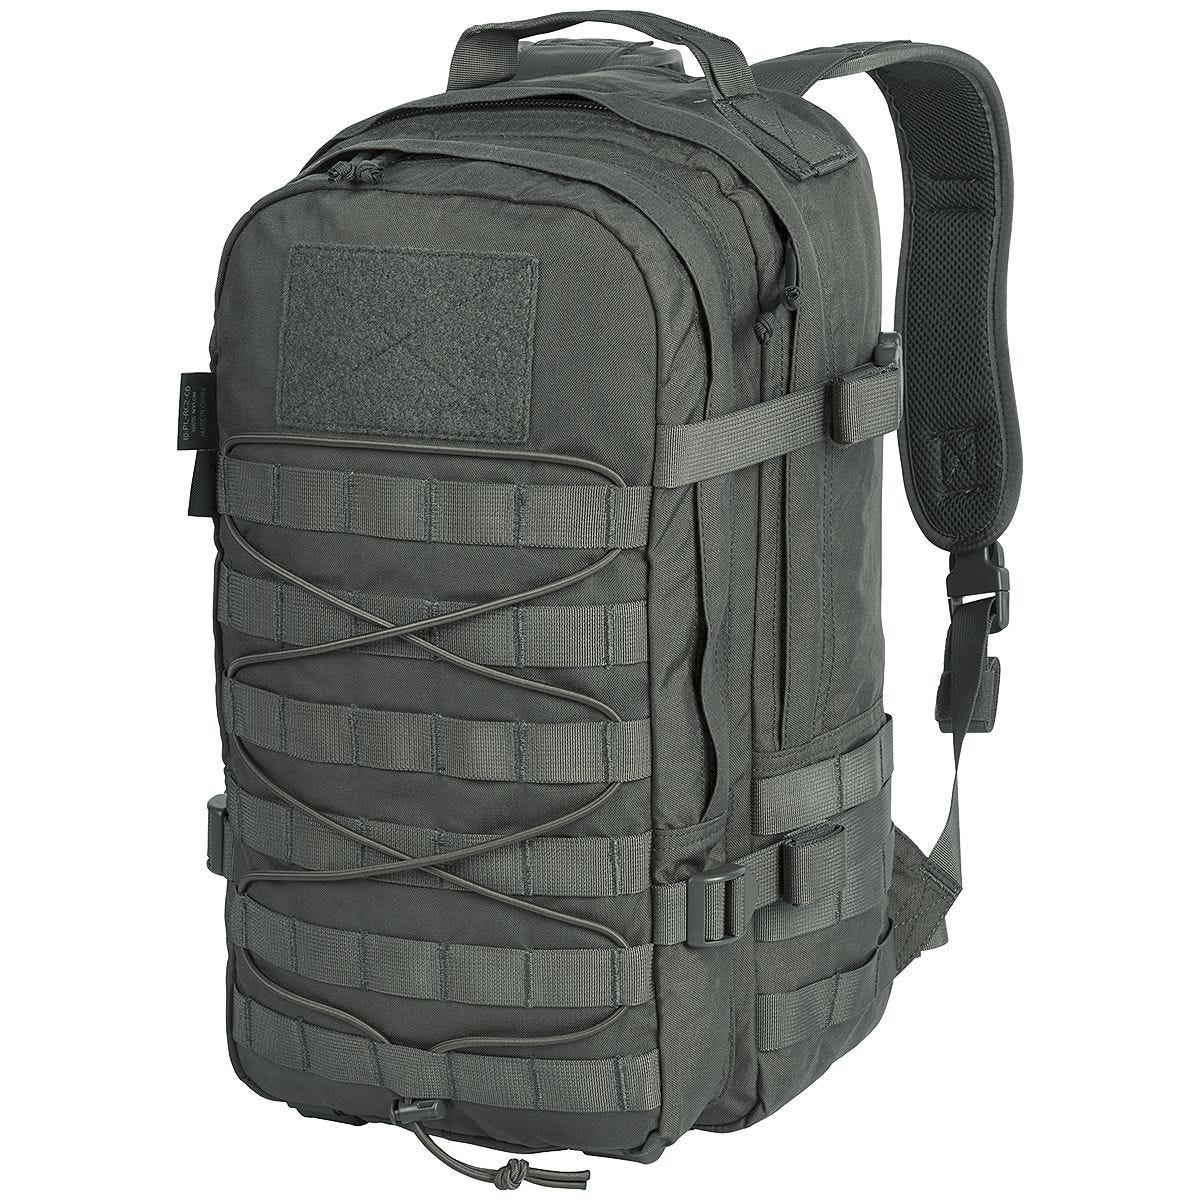 The Helikon Raccoon Mk2 Backpack travel product recommended by Lukas on Lifney.